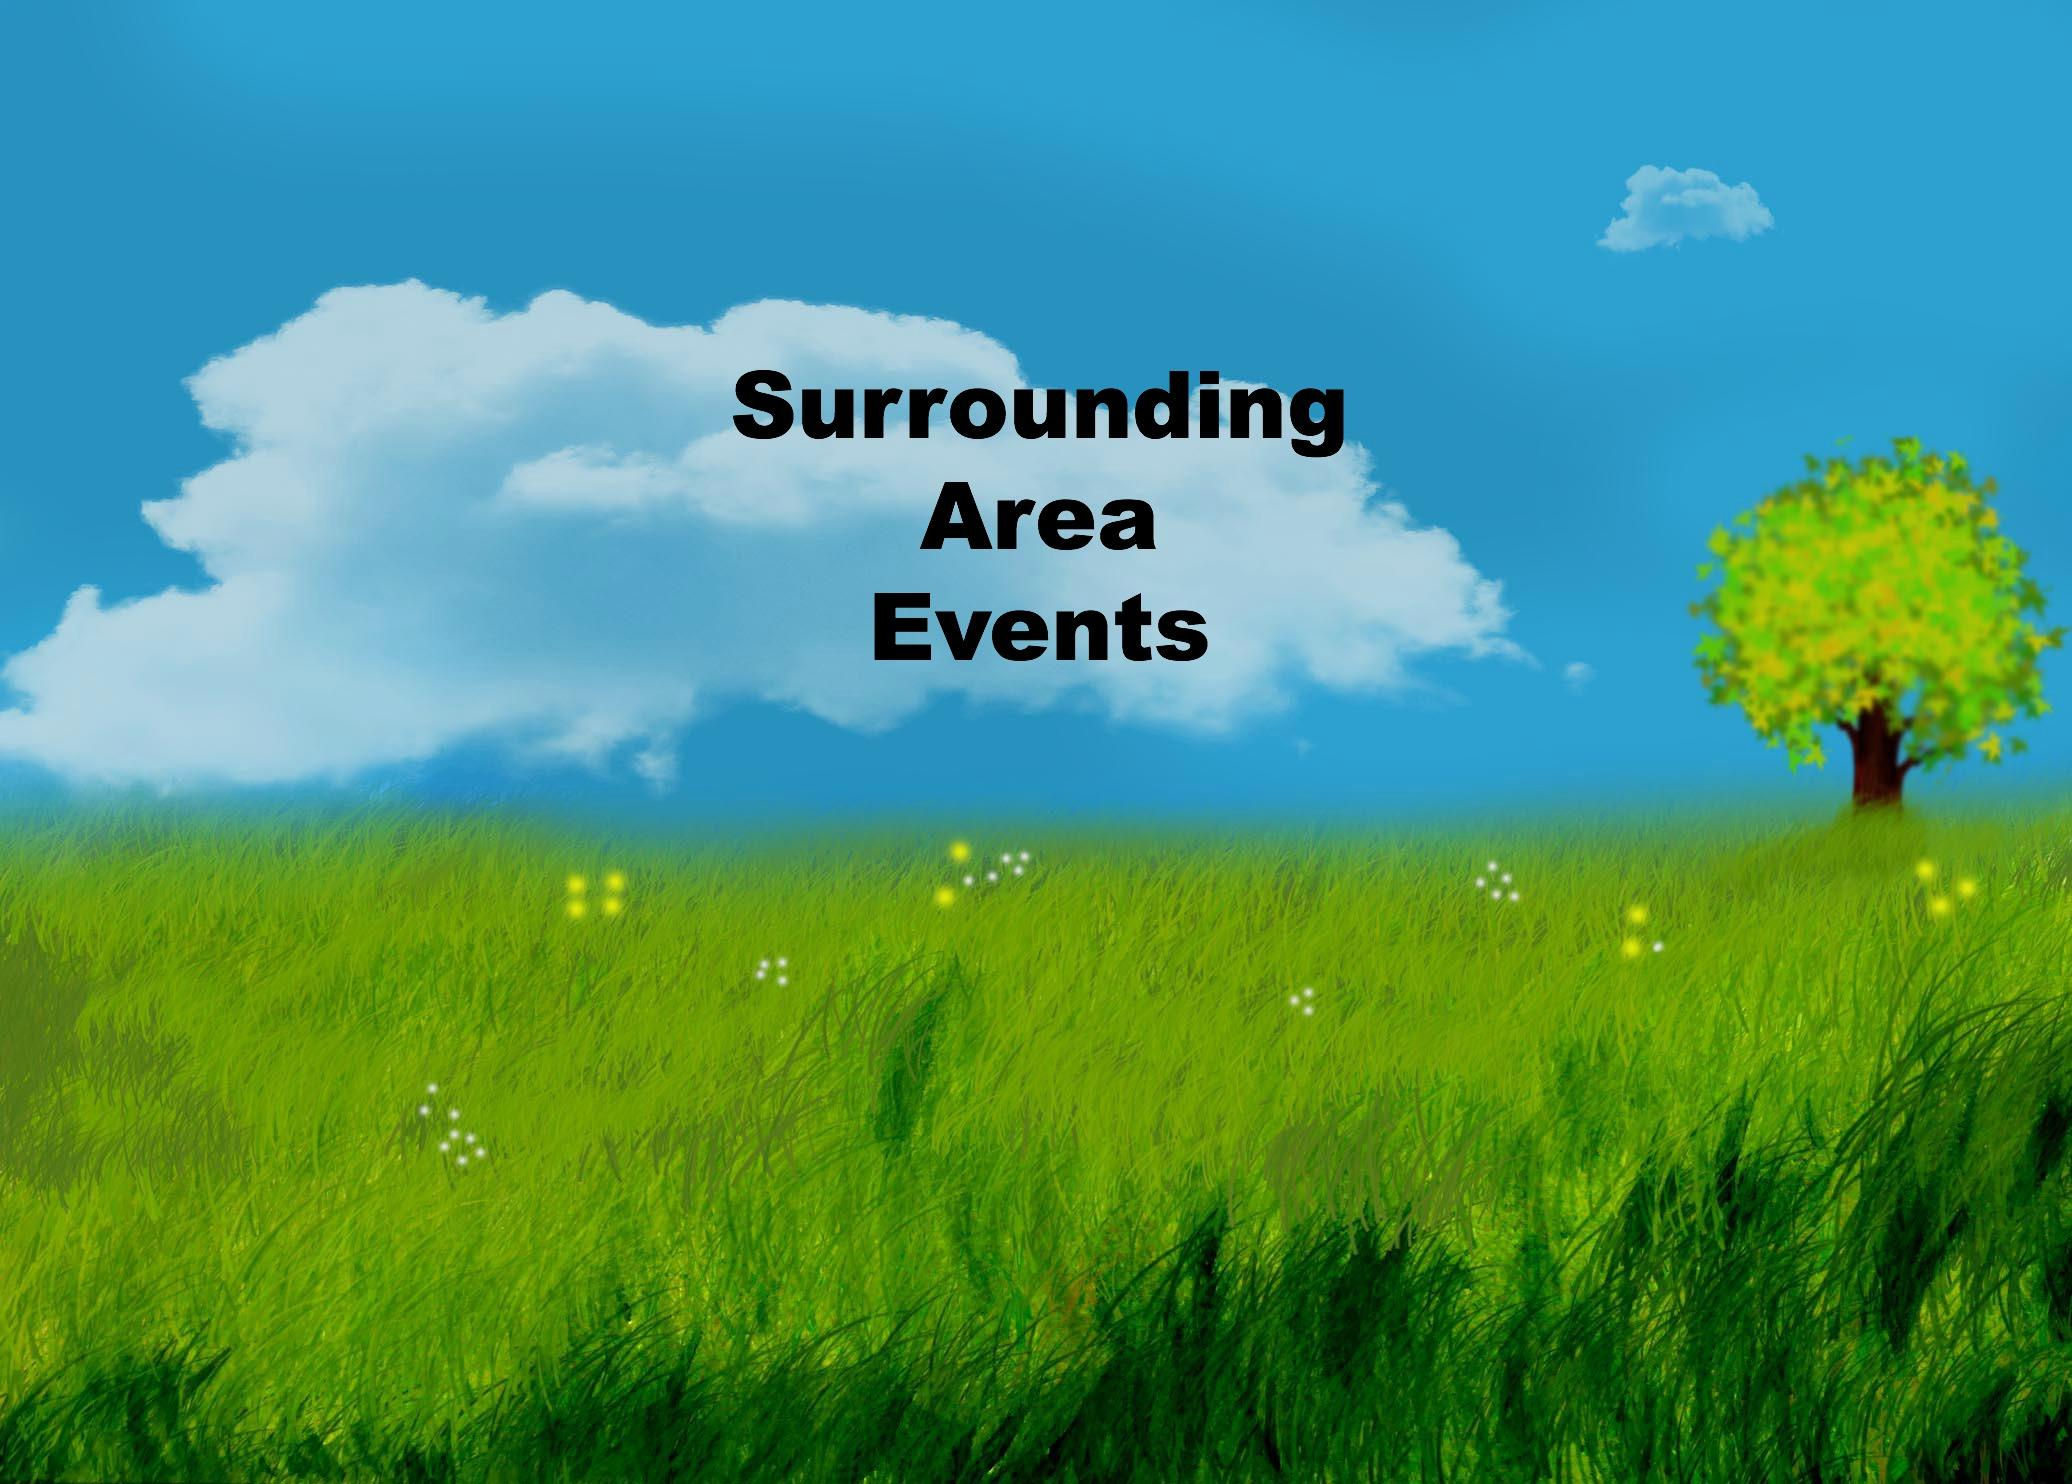 Surrounding Area Events Spring